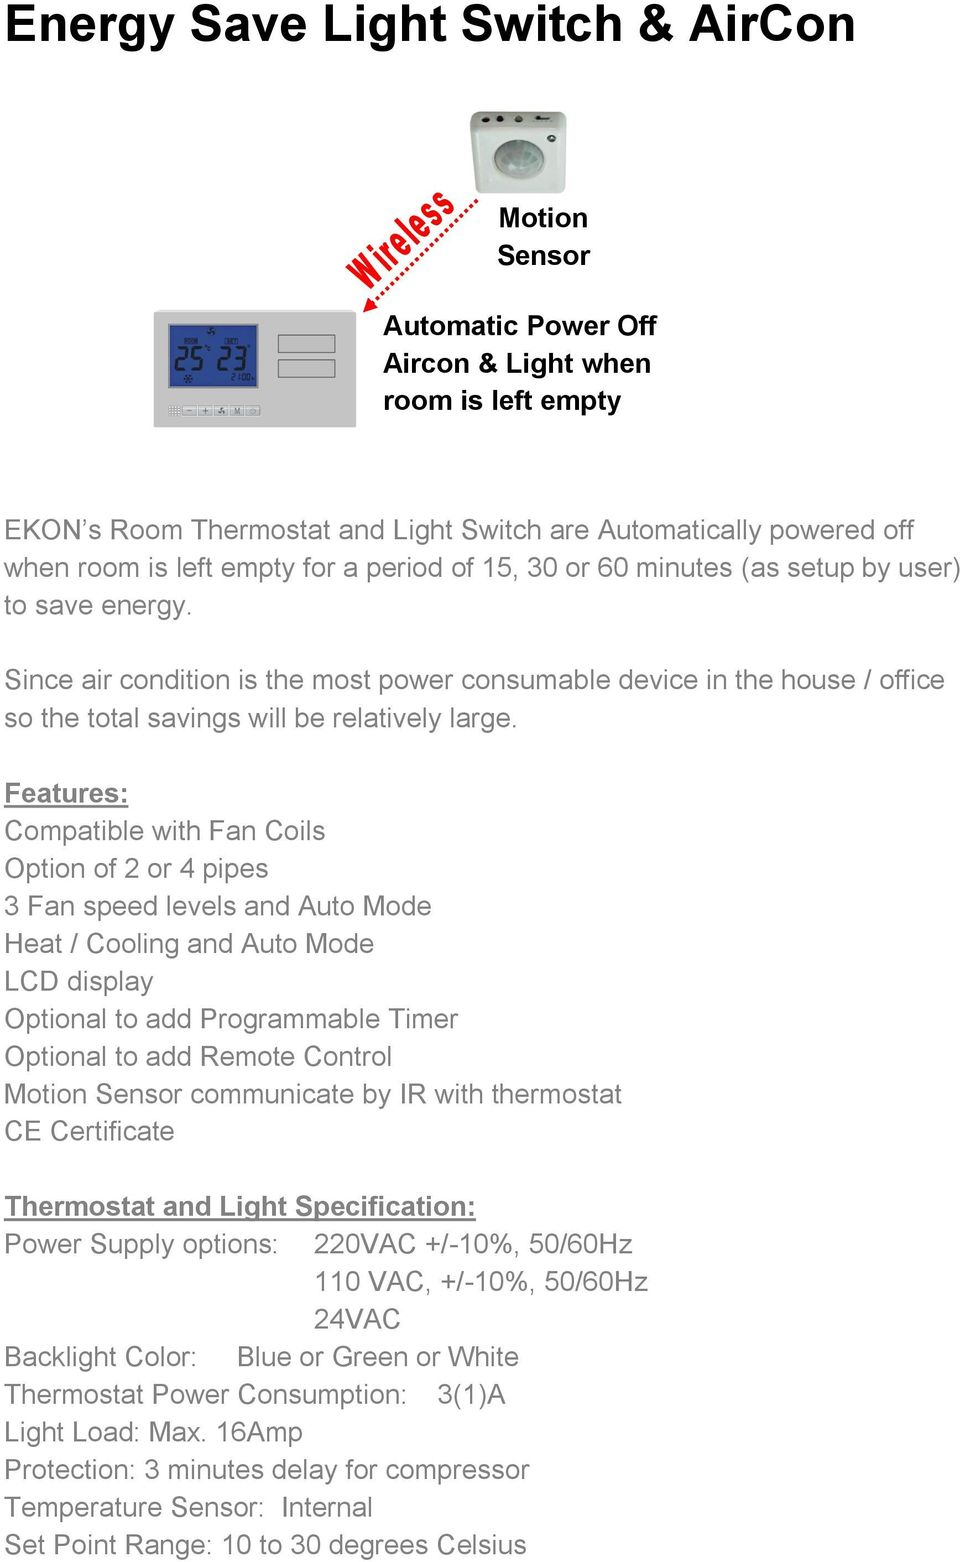 Smart Hvac Ecoclimate Pdf The Thermostat Is Rated At 16amps And Will Control A Maximum Heated Since Air Condition Most Power Consumable Device In House Office So